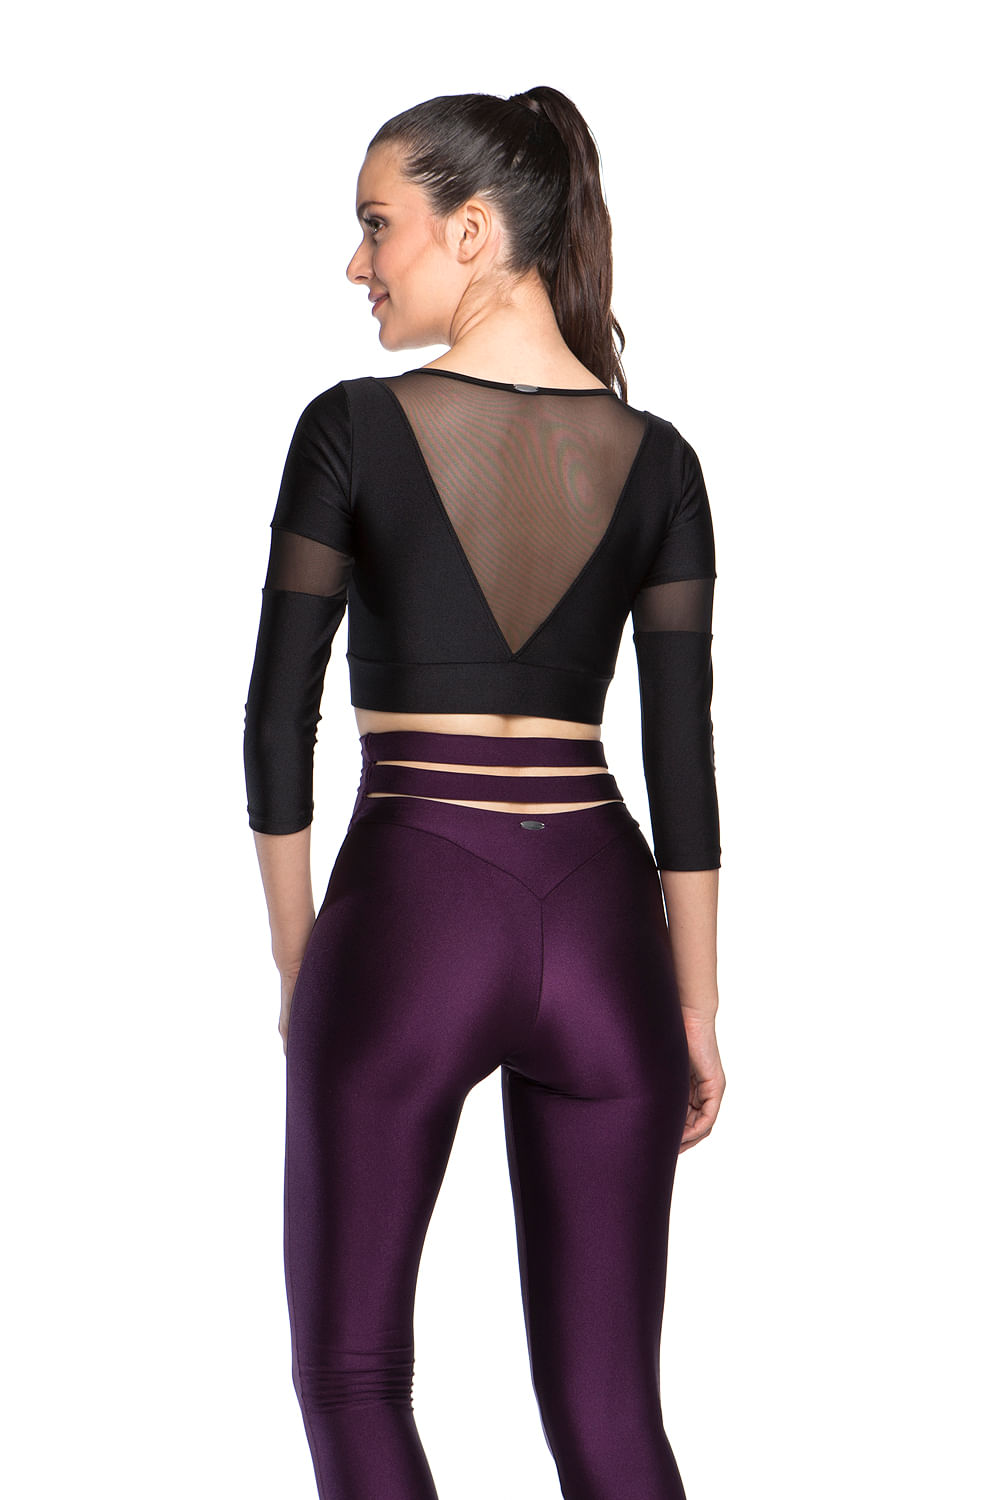 2974---Top-Fitness-Cropped-V-Tule---Preto--3-